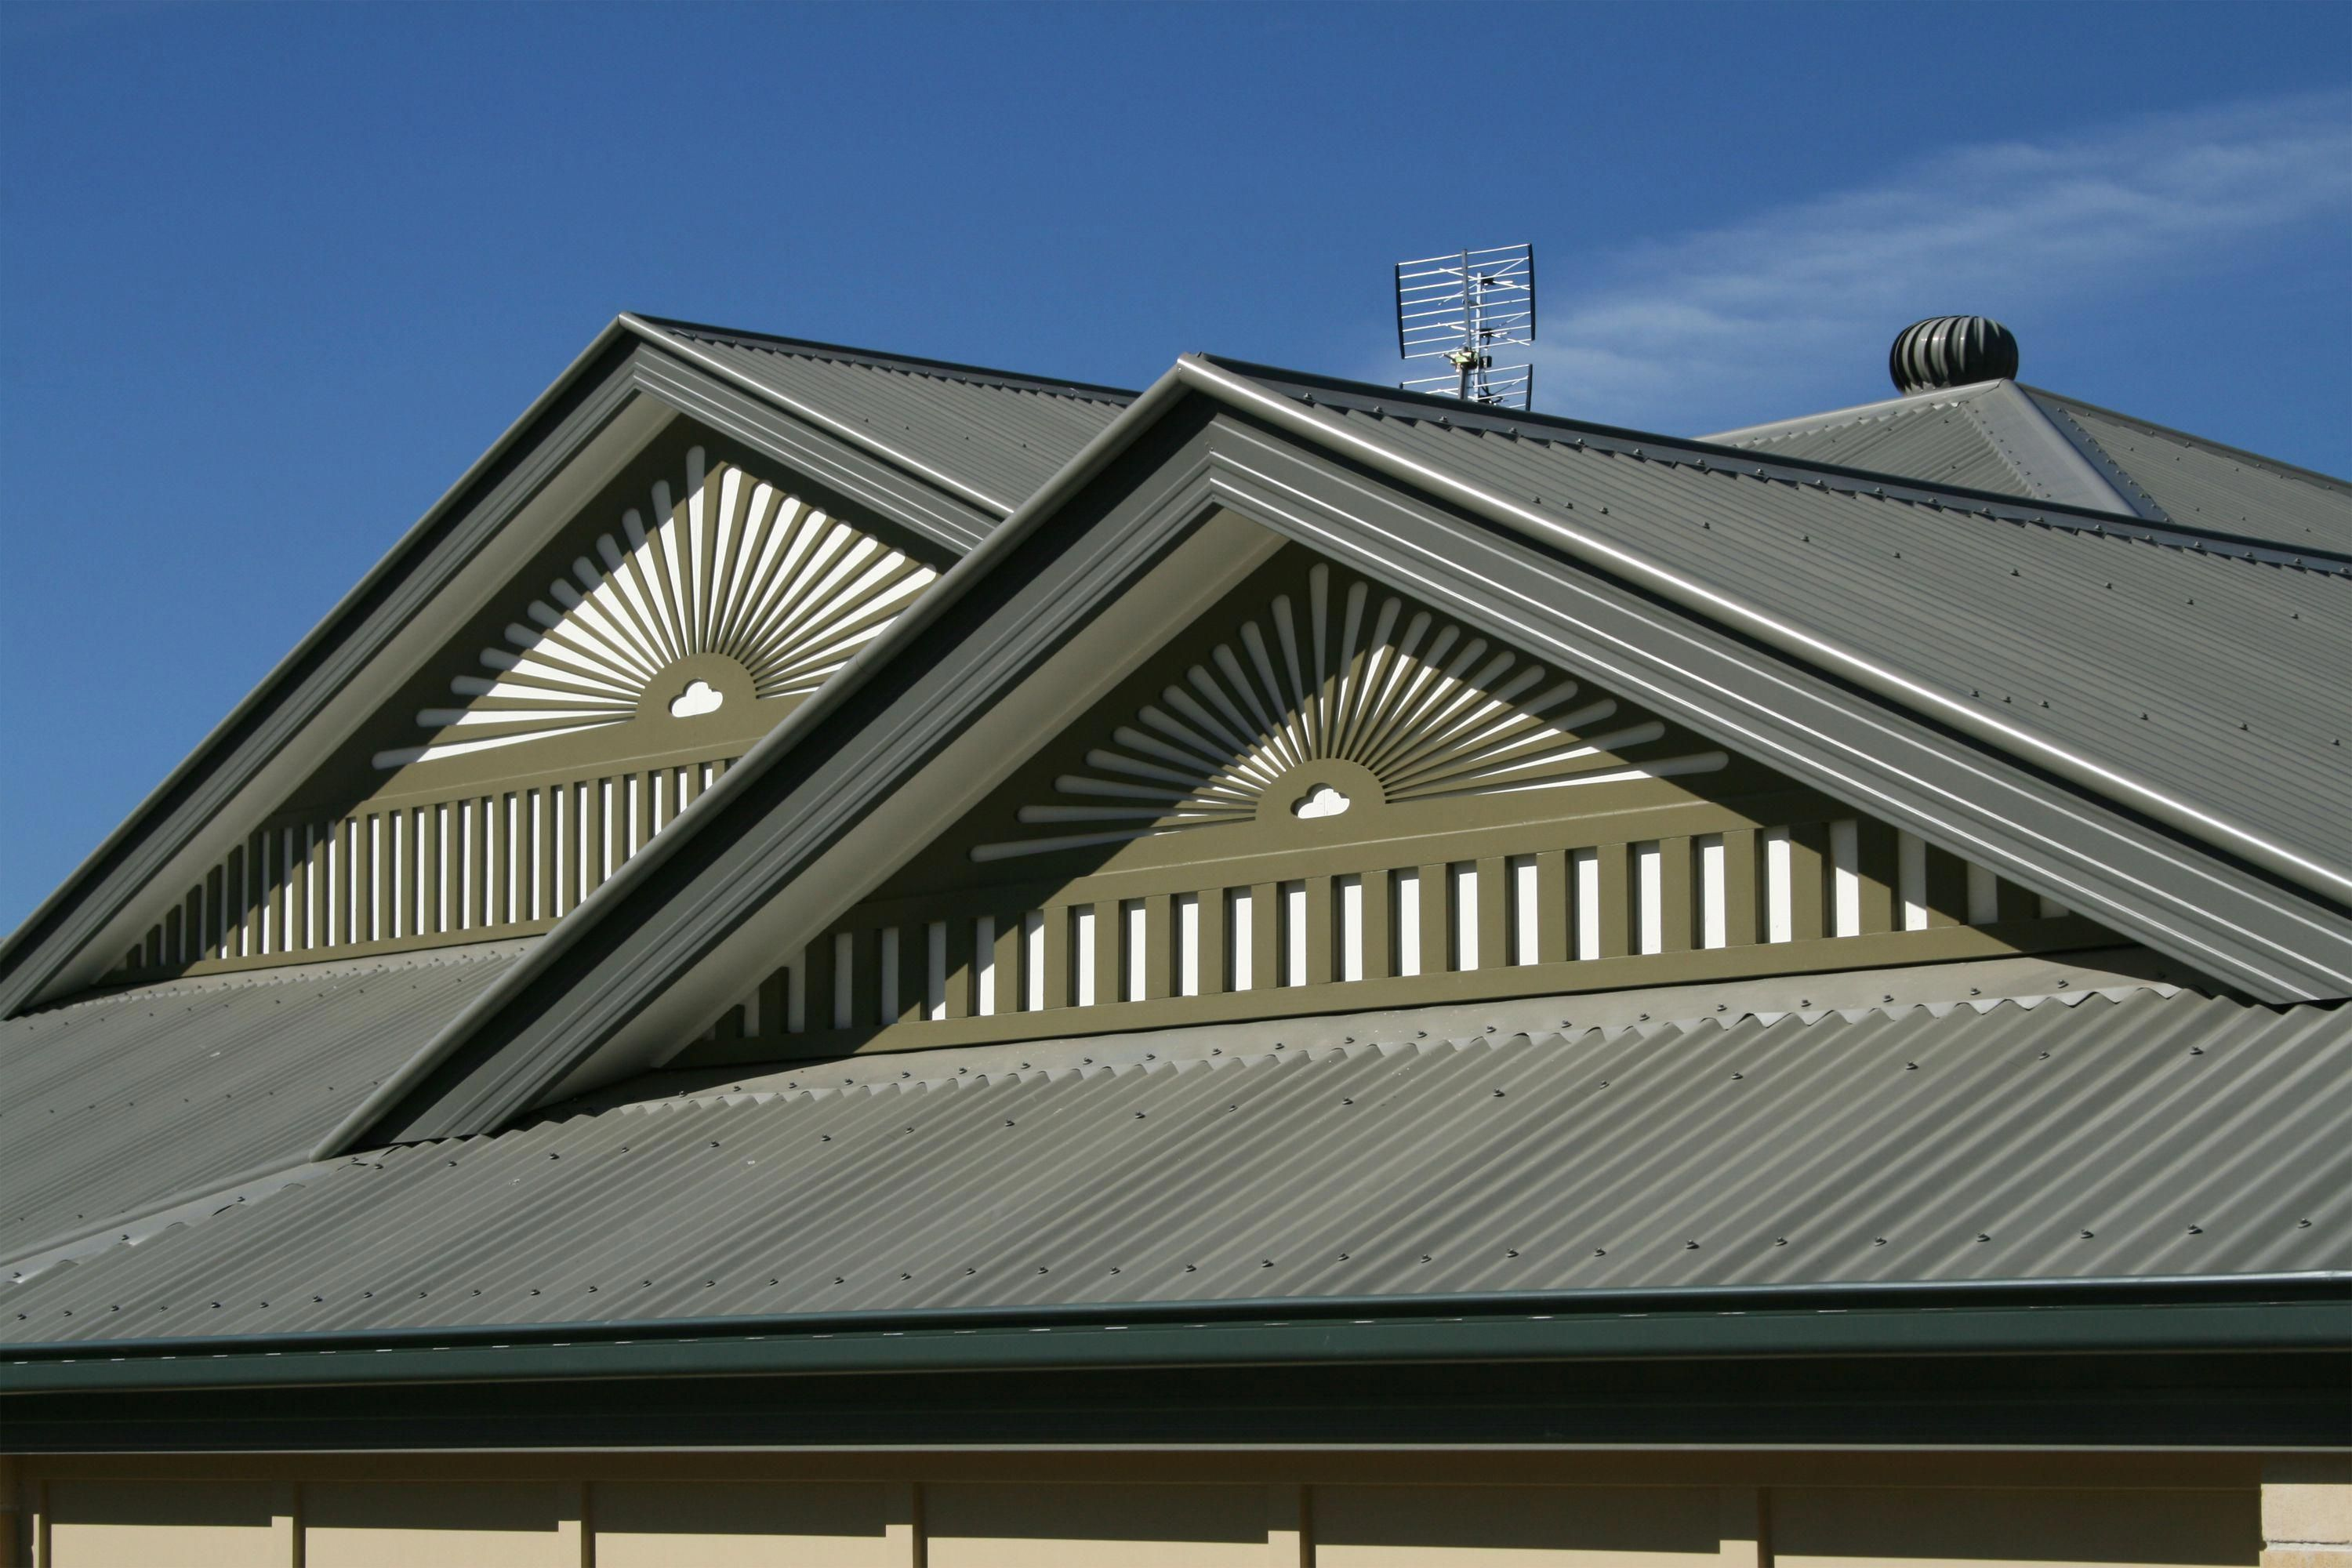 Delightful Glass Roof Go To Our Post For Additional Tips And Hints Glassroof Gable Roof Design Fibreglass Roof Standing Seam Metal Roof